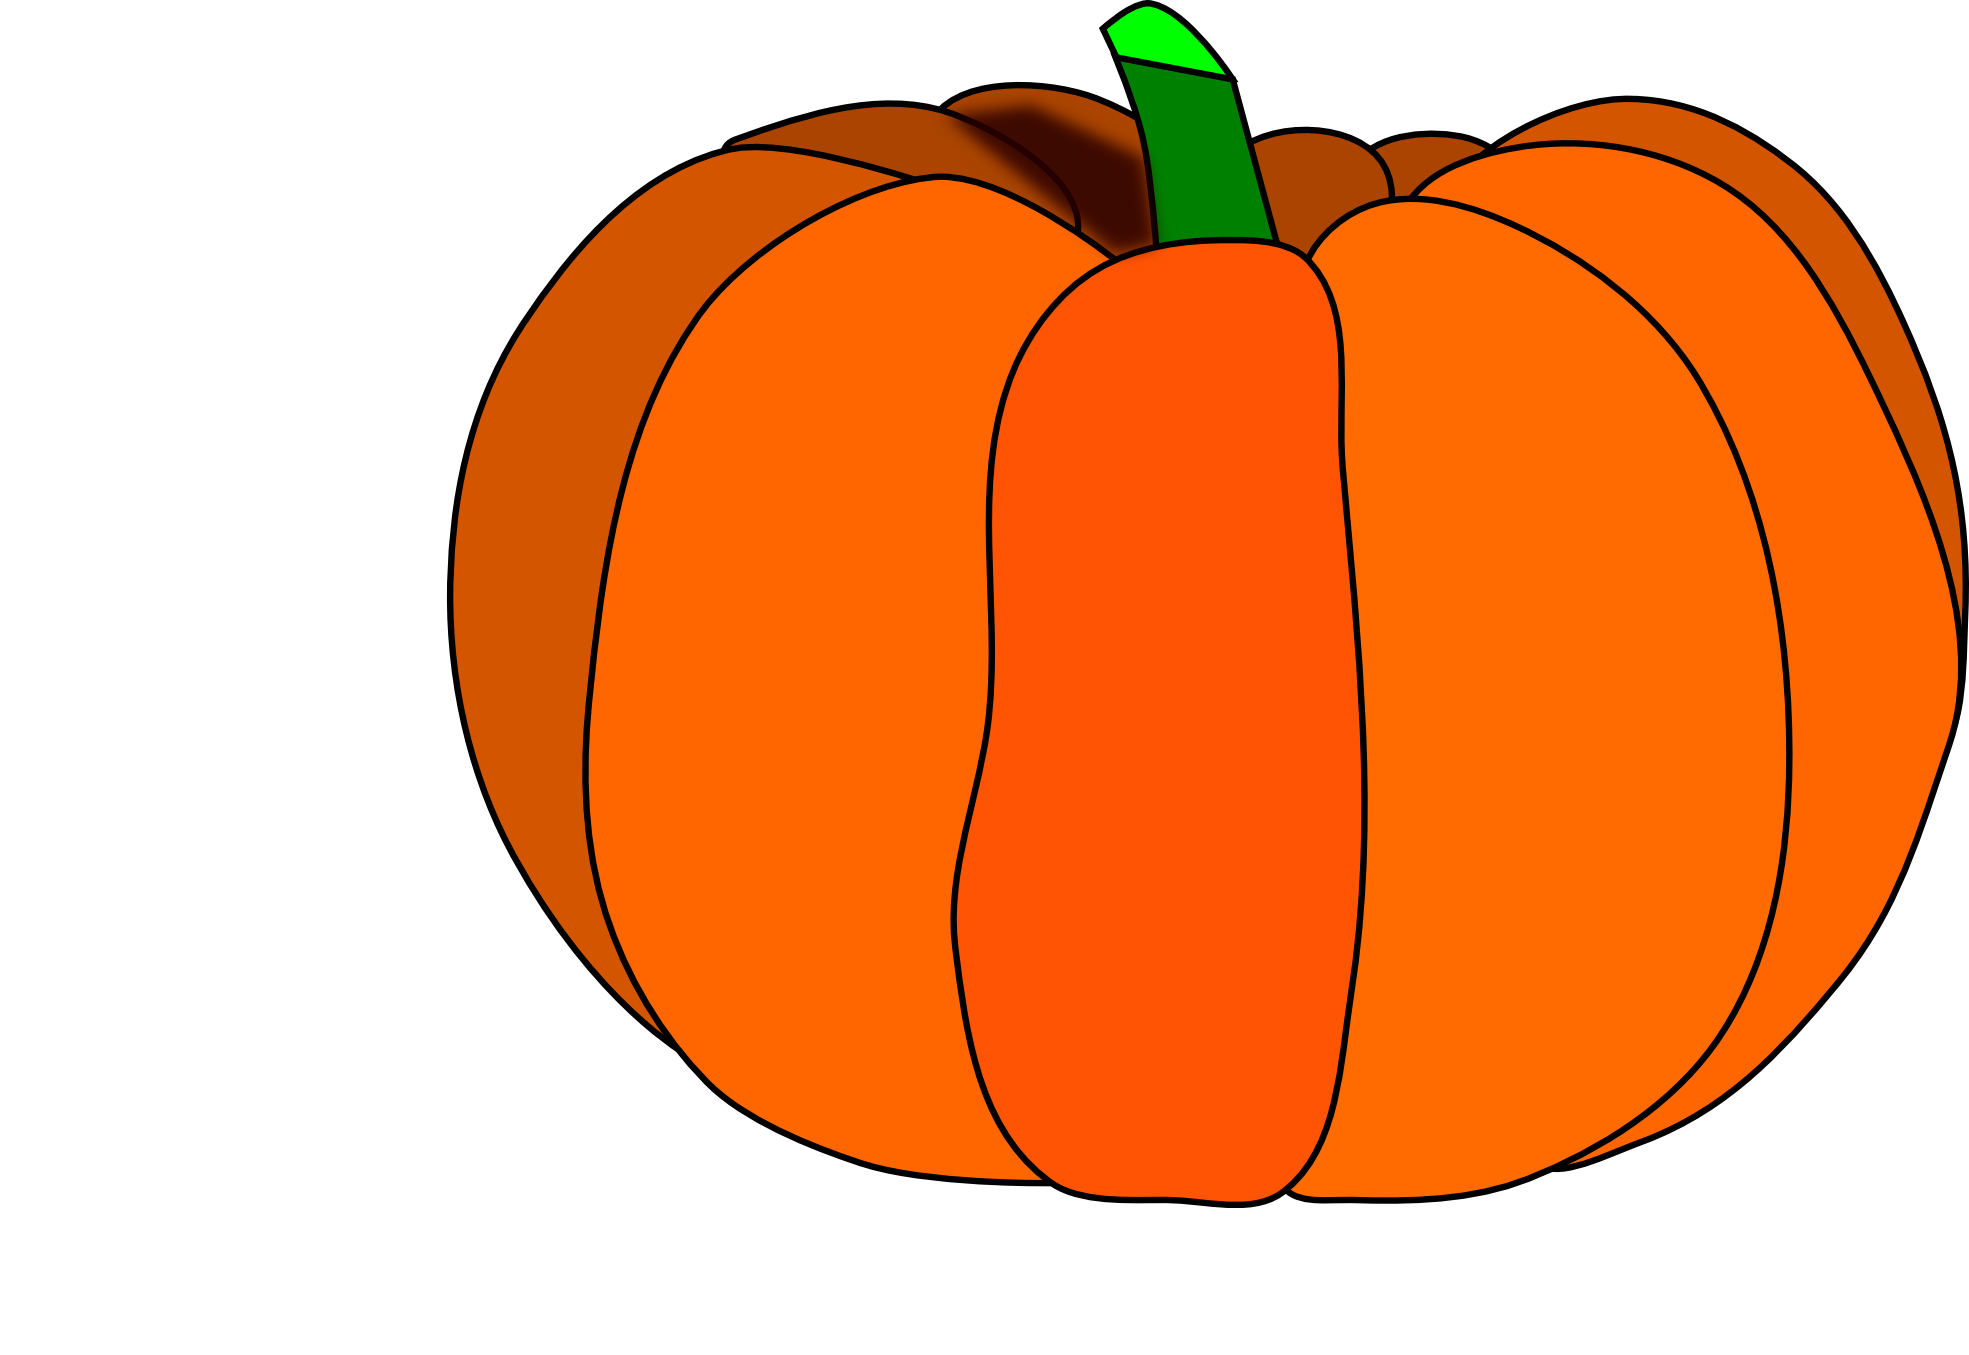 Pumpkin patch clipart free black and white image library stock clipartist.net » Clip Art » Potiron Pumpkin openclipart.org 2013 ... image library stock